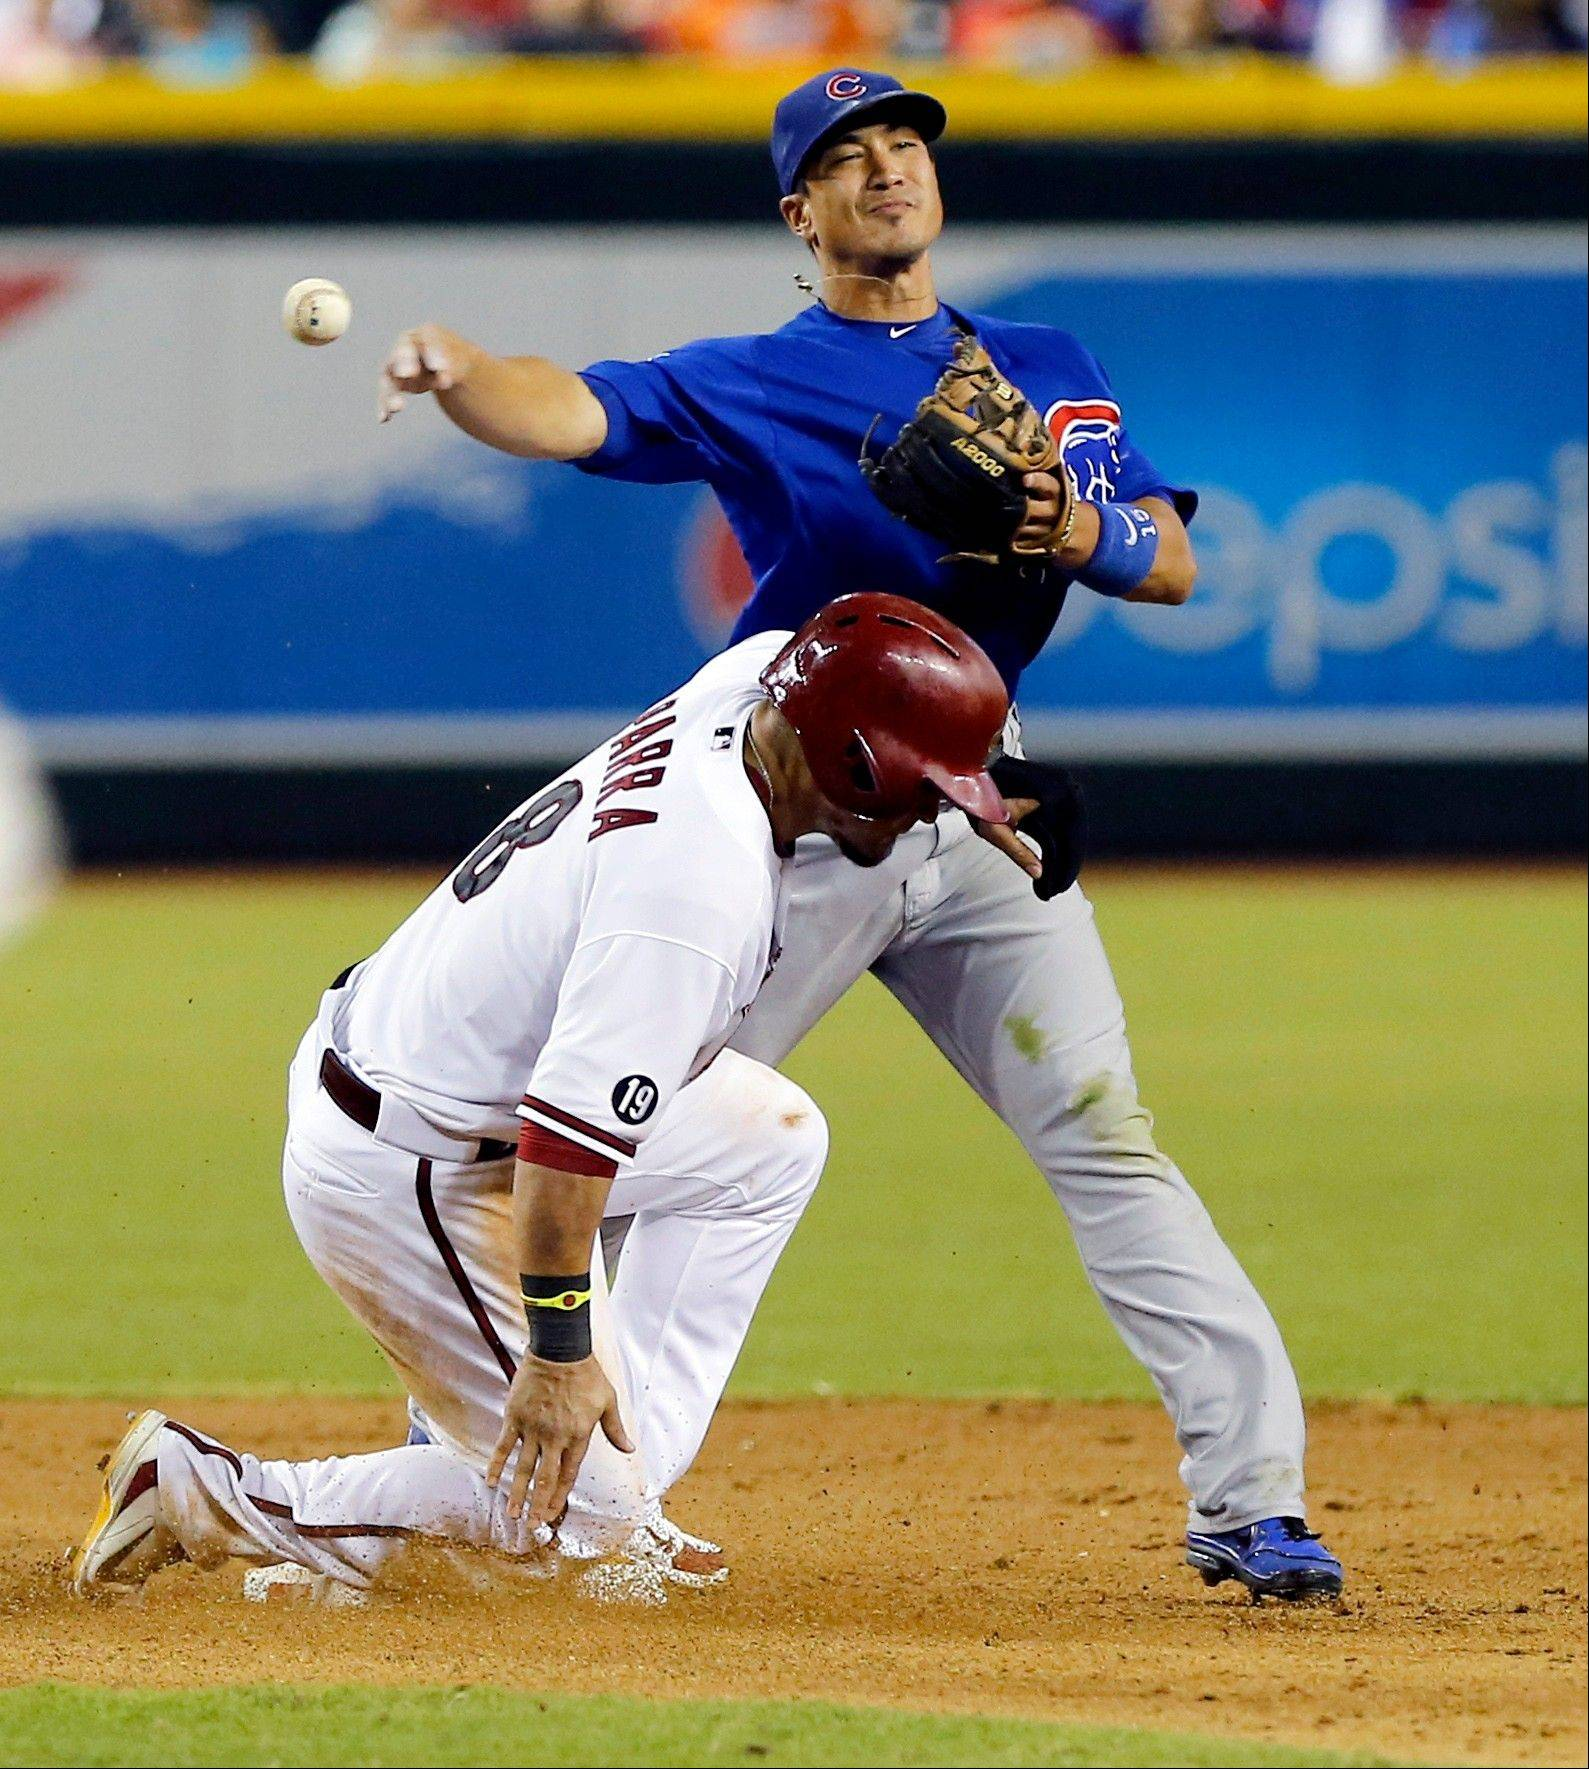 Arizona Diamondbacks� Gerardo Parra is forced out by Chicago Cubs� Darwin Barney as he throws out Wil Neives Thursday night in Phoenix. The Cubs lost 3-1.